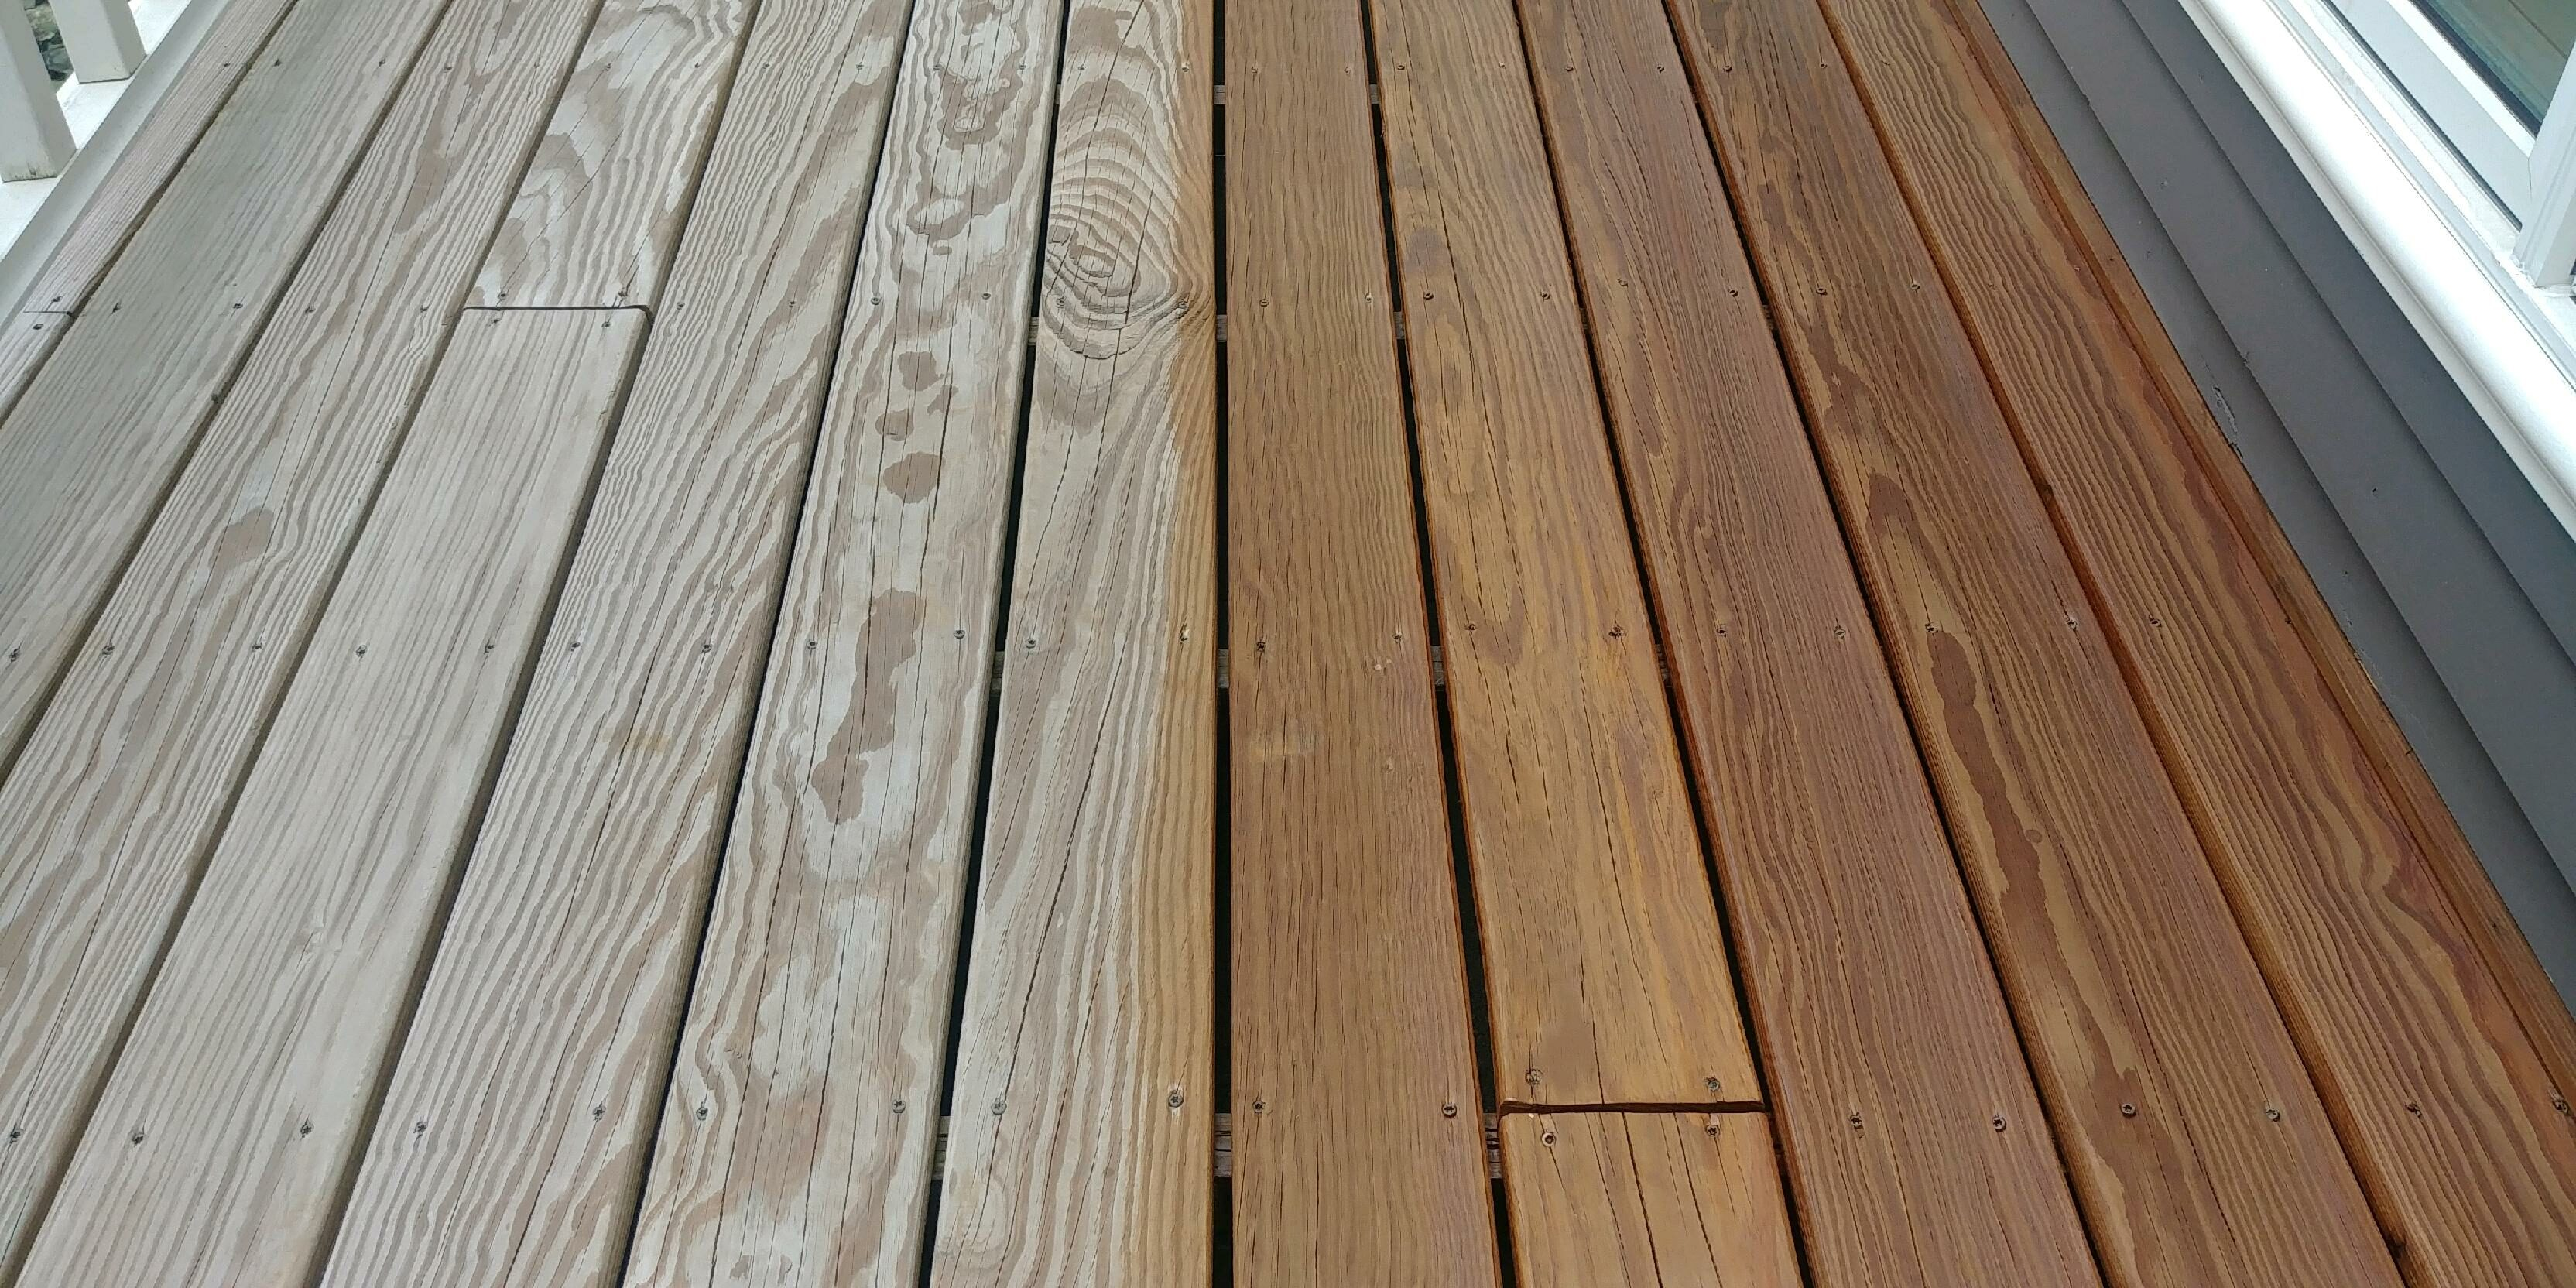 chagin-falls-deck-wash-staining-paint